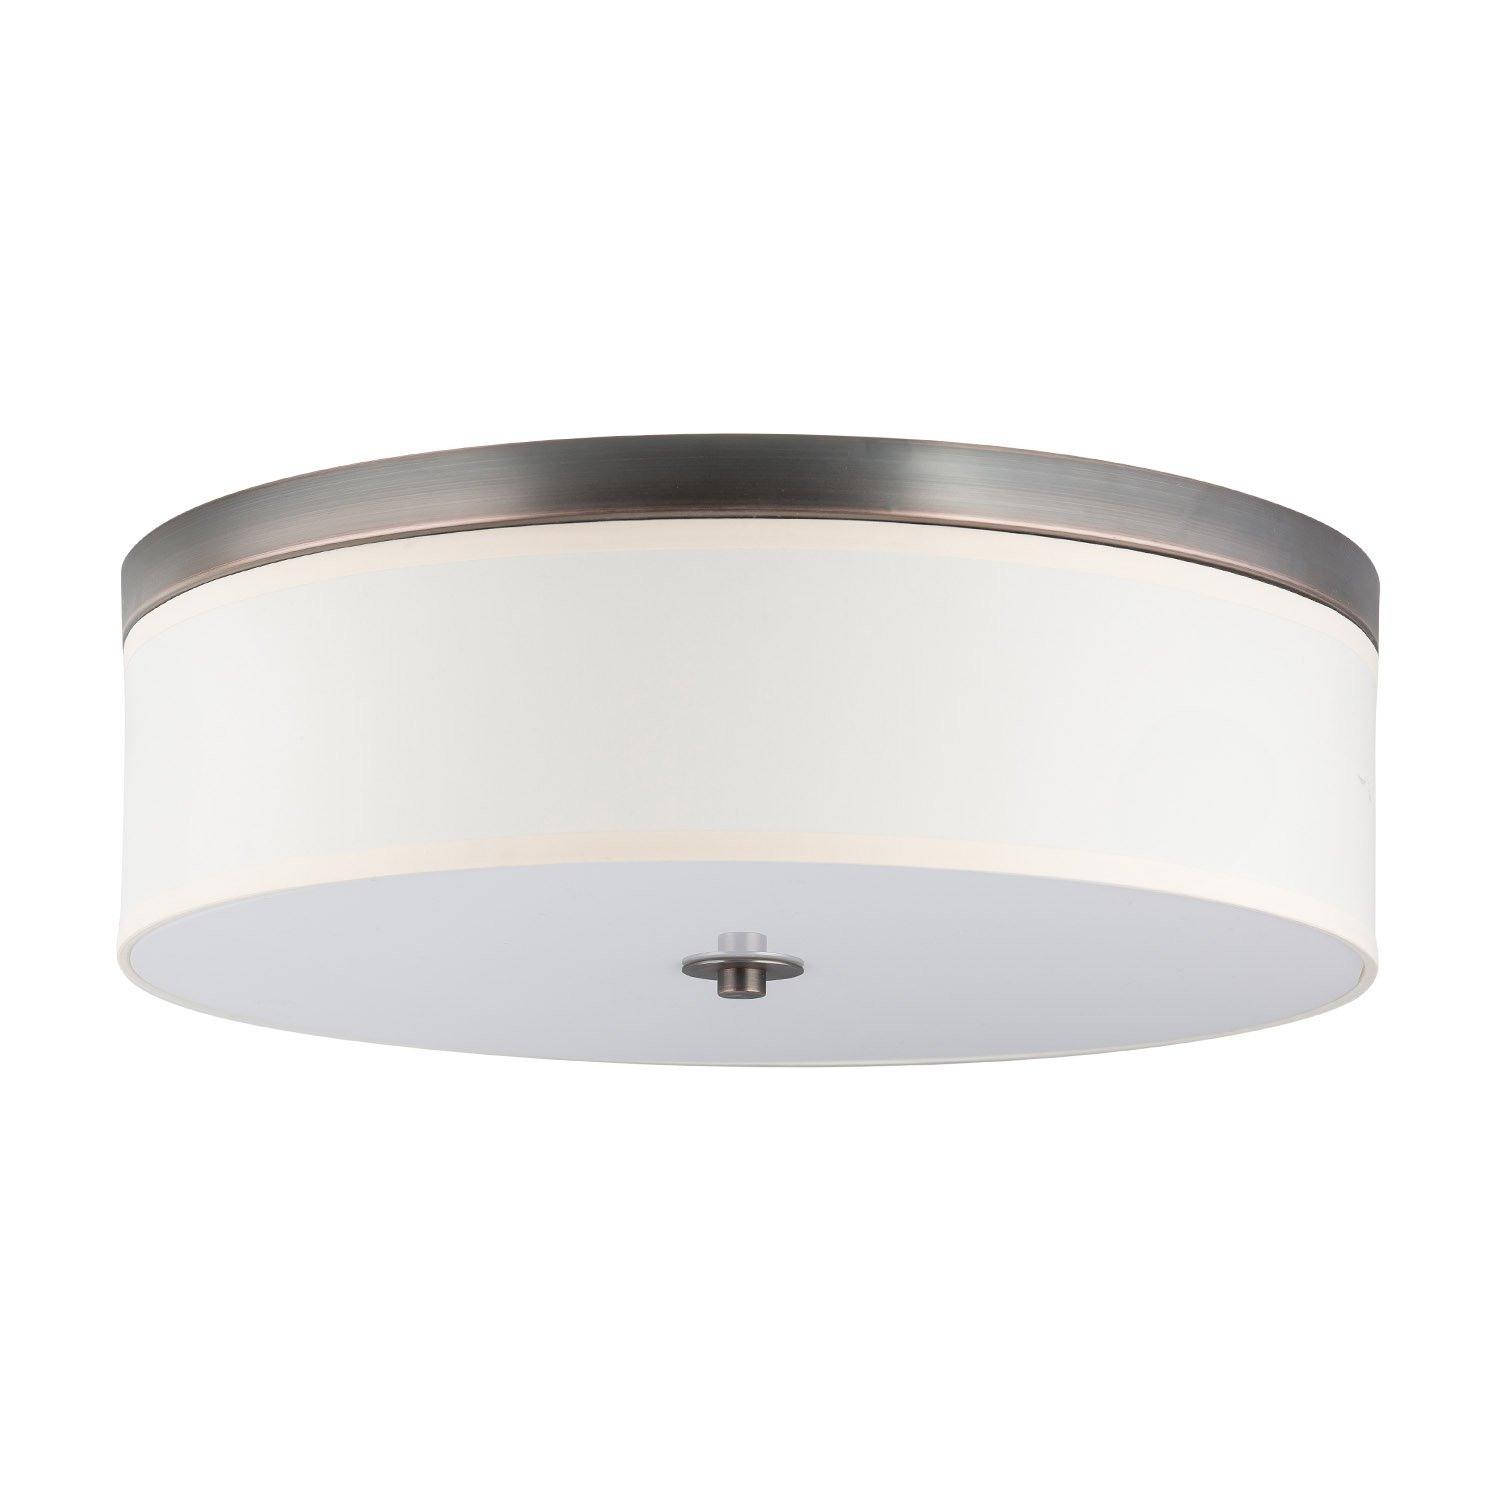 Occhio 20.5'' Flush Mount Ceiling Light - Bronze w/ a Sandstone Fabric Shade - Linea di Liara LL-C253-BRO by Linea di Liara